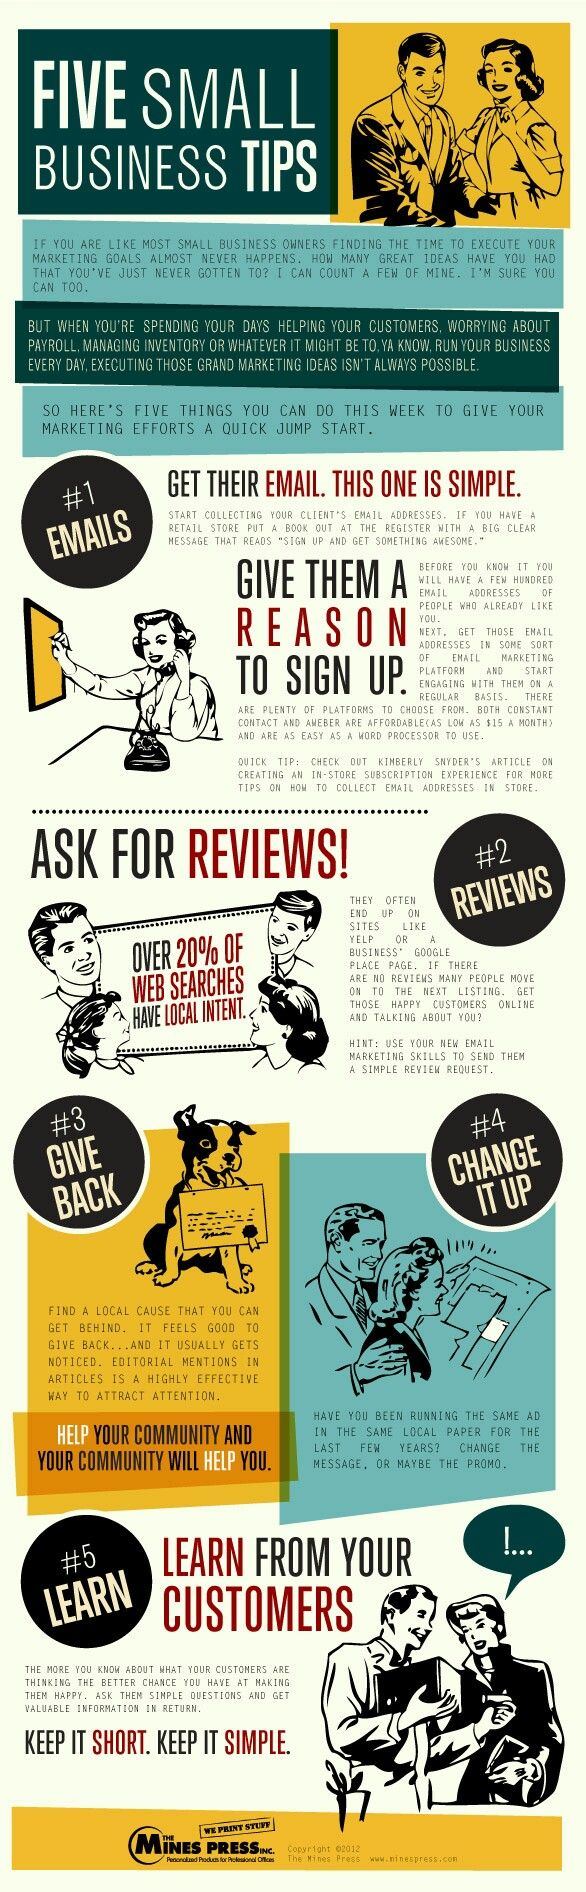 Small Business Marketing Tips - iNFOGRAPHiCs MANiA                              …